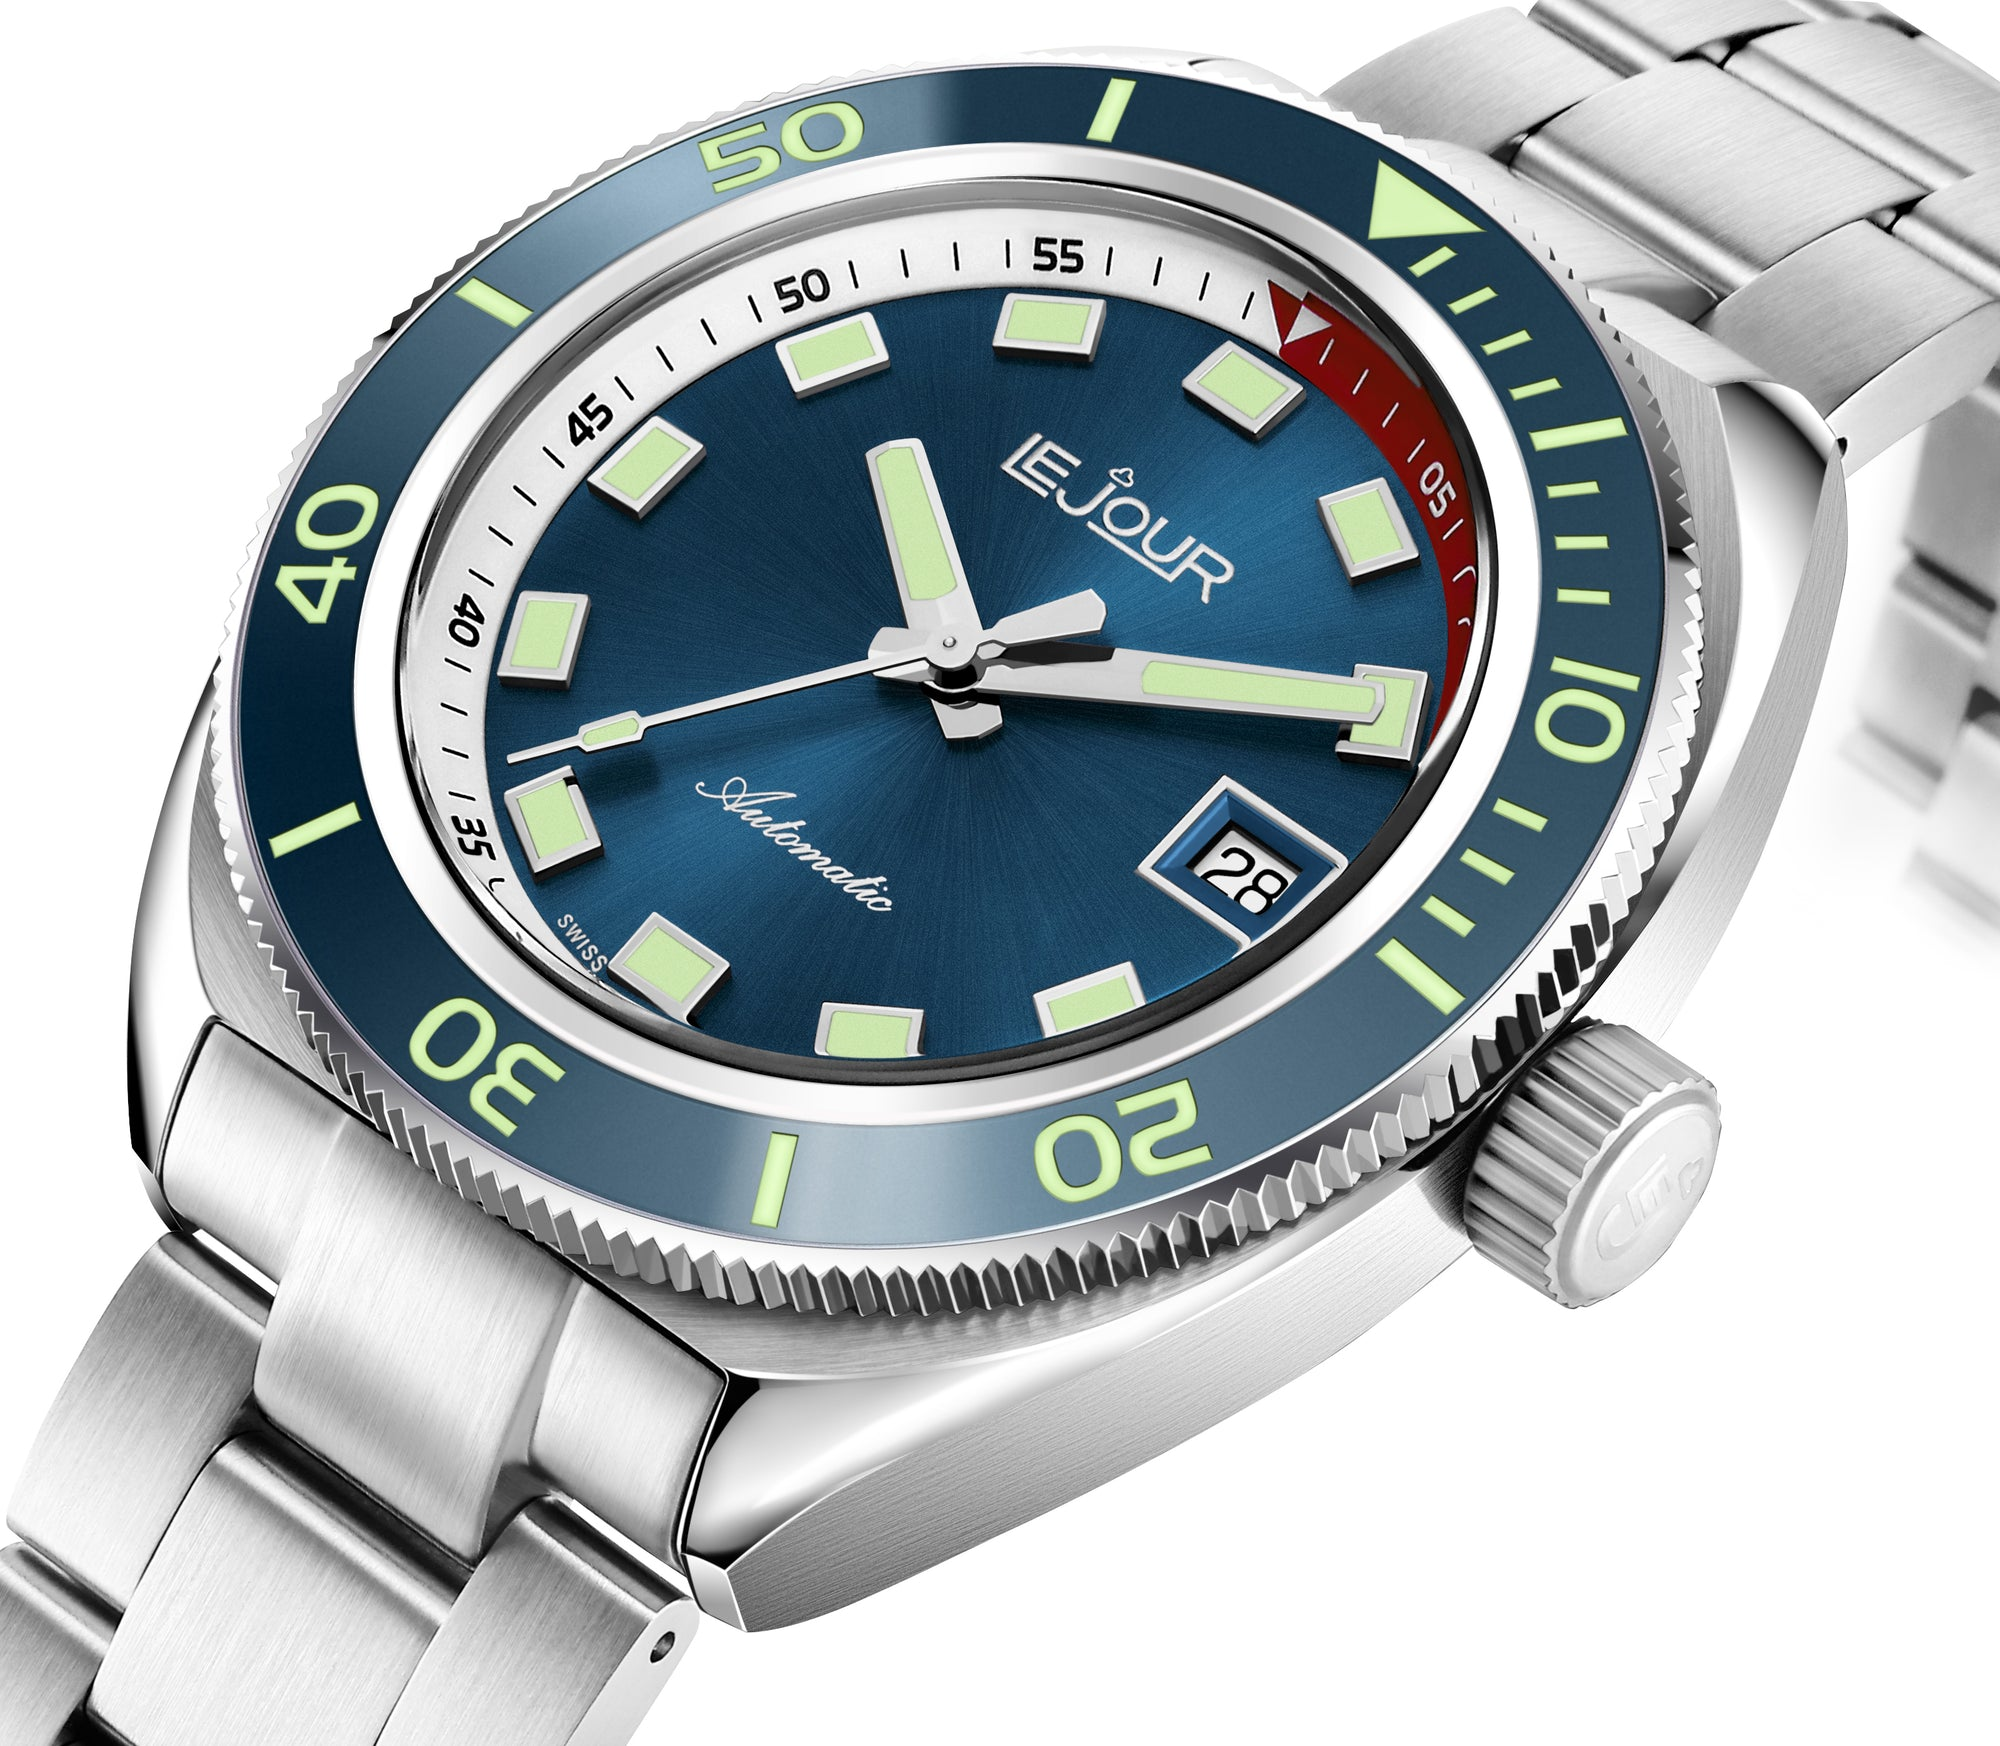 Le Jour Hammerhead Dive Watch